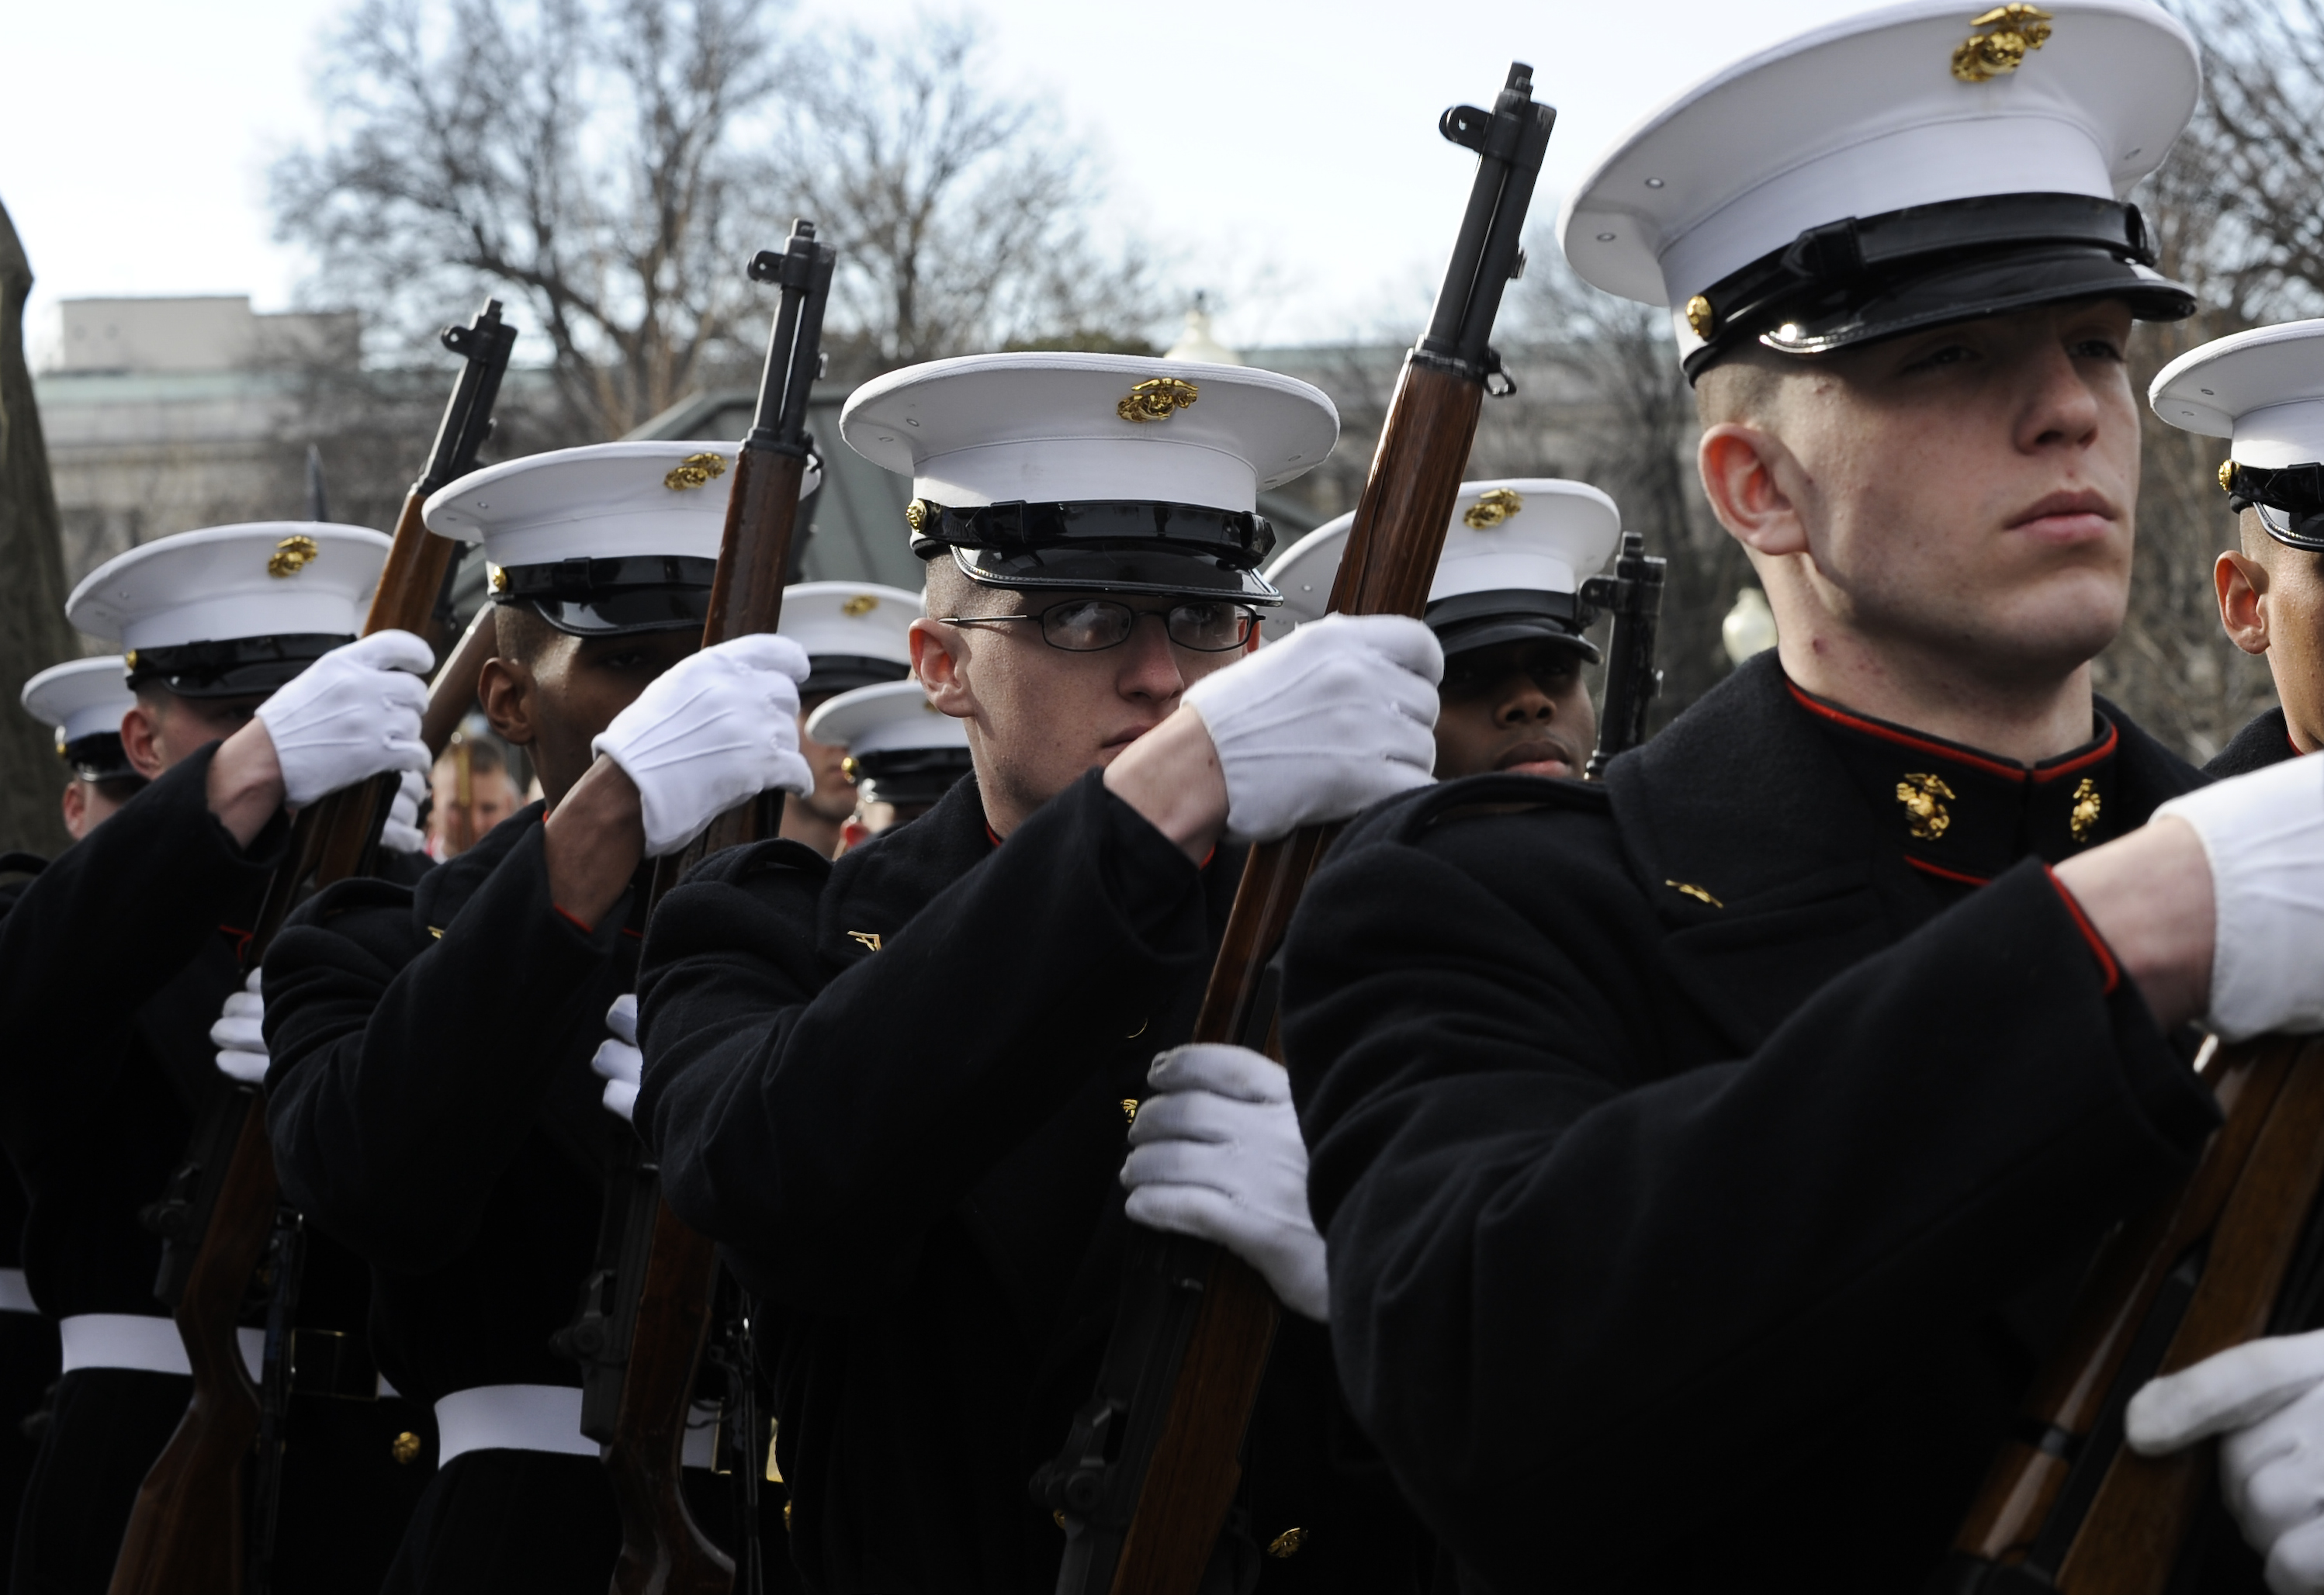 File:Members of the U.S. Marine Corps Honor Guard perform drill movements  outside the U.S.